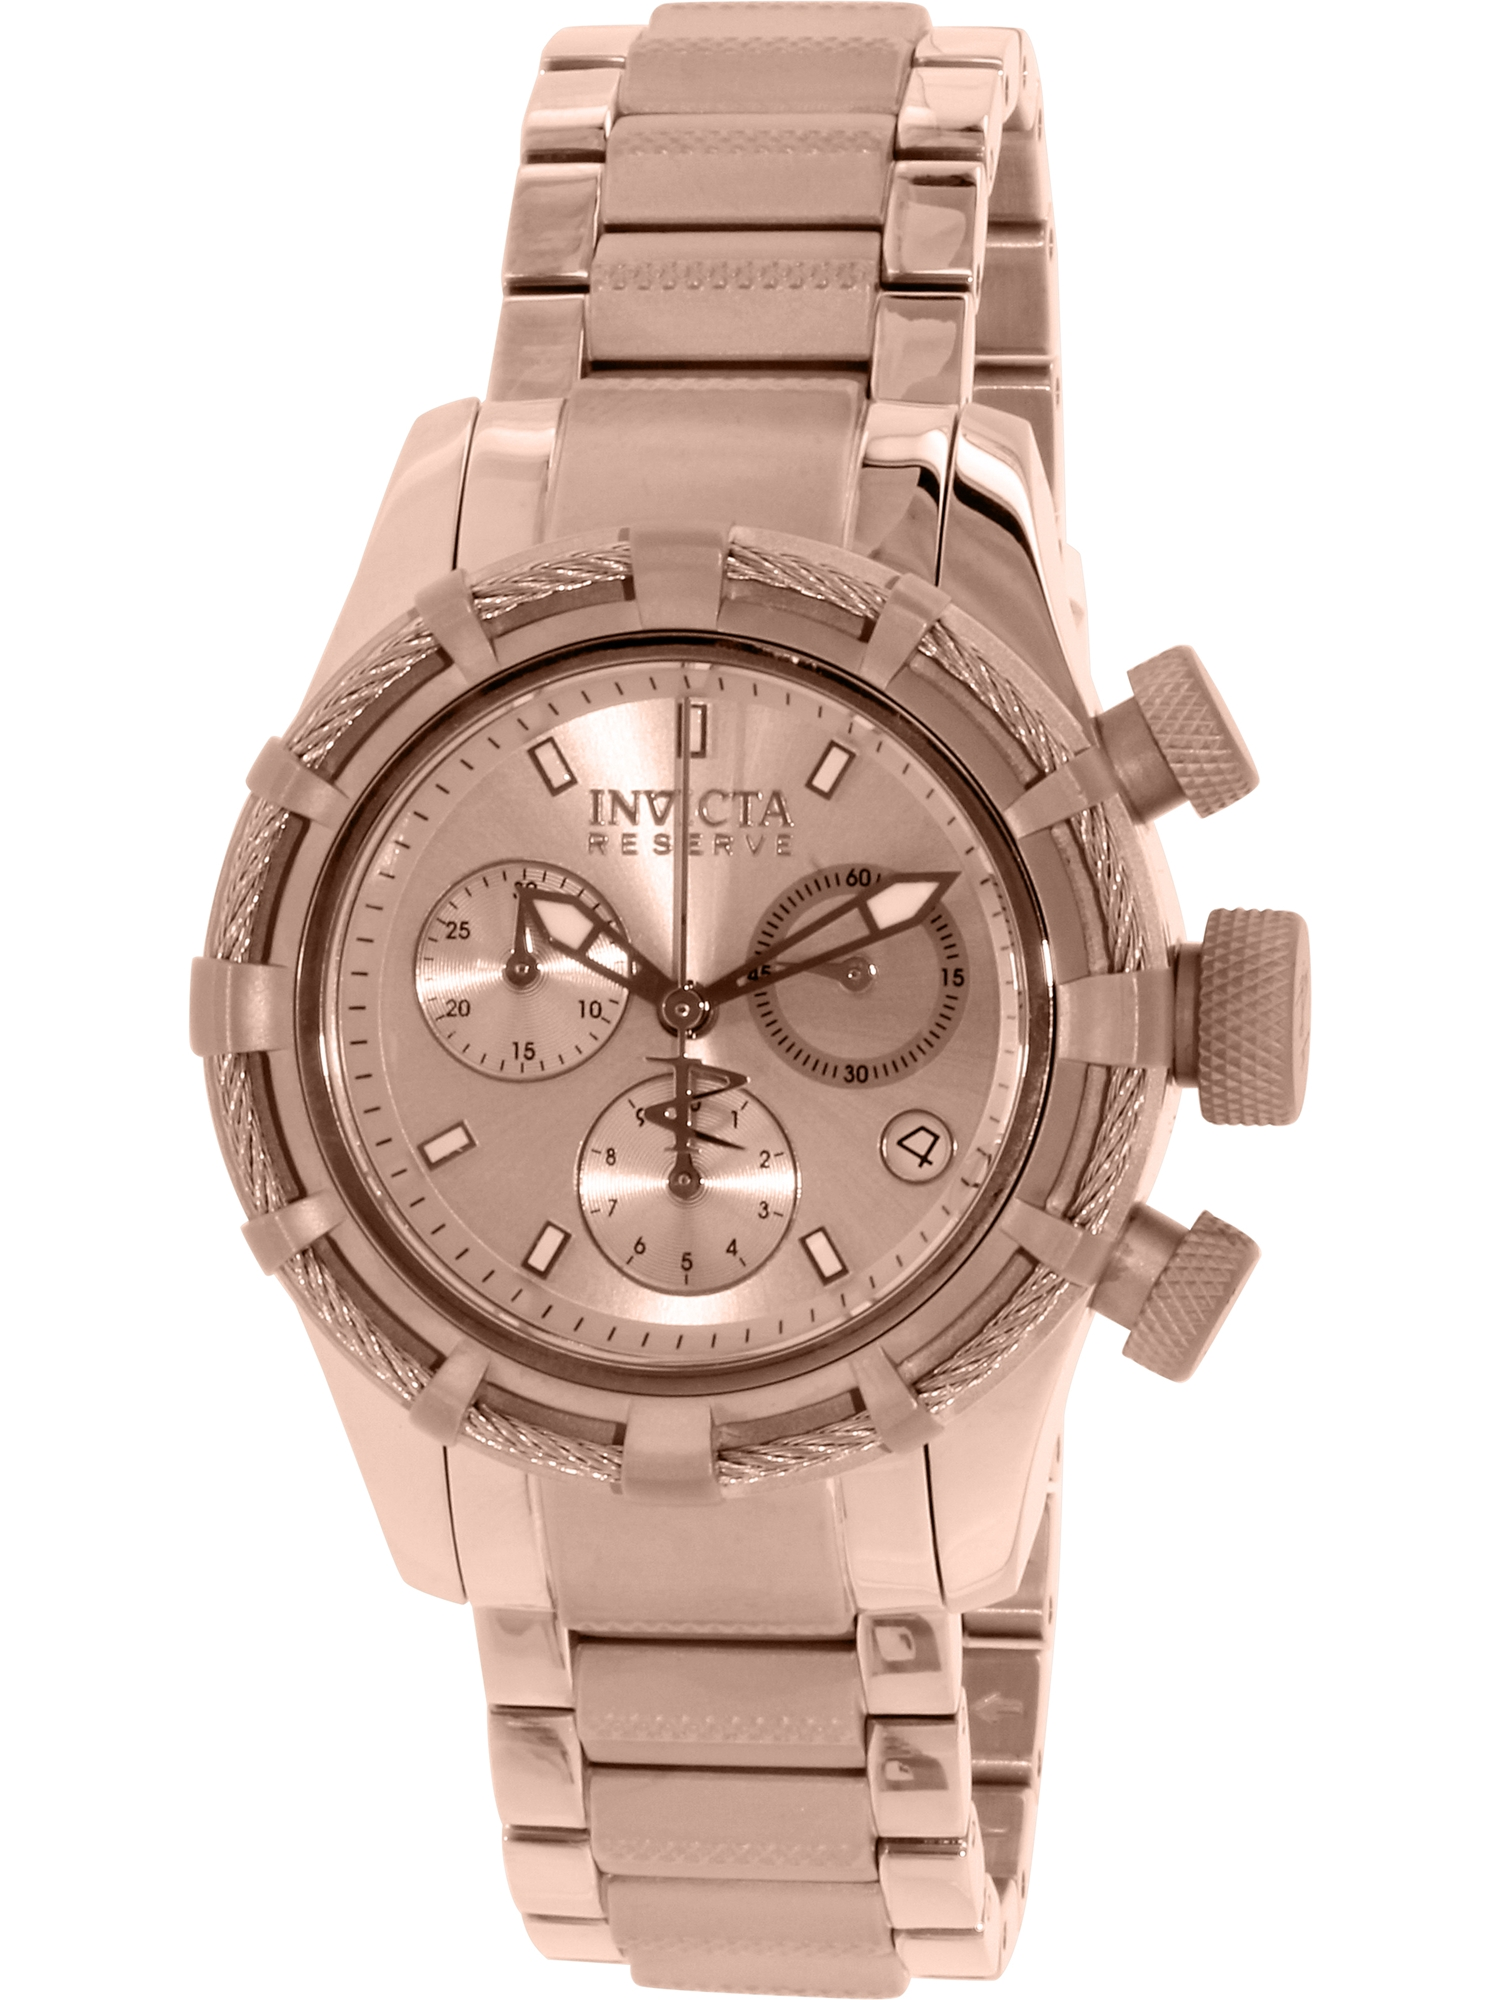 12460 Women's Bolt Reserve Rose Gold Dial Rose Gold Steel Chronograph Dive Watch